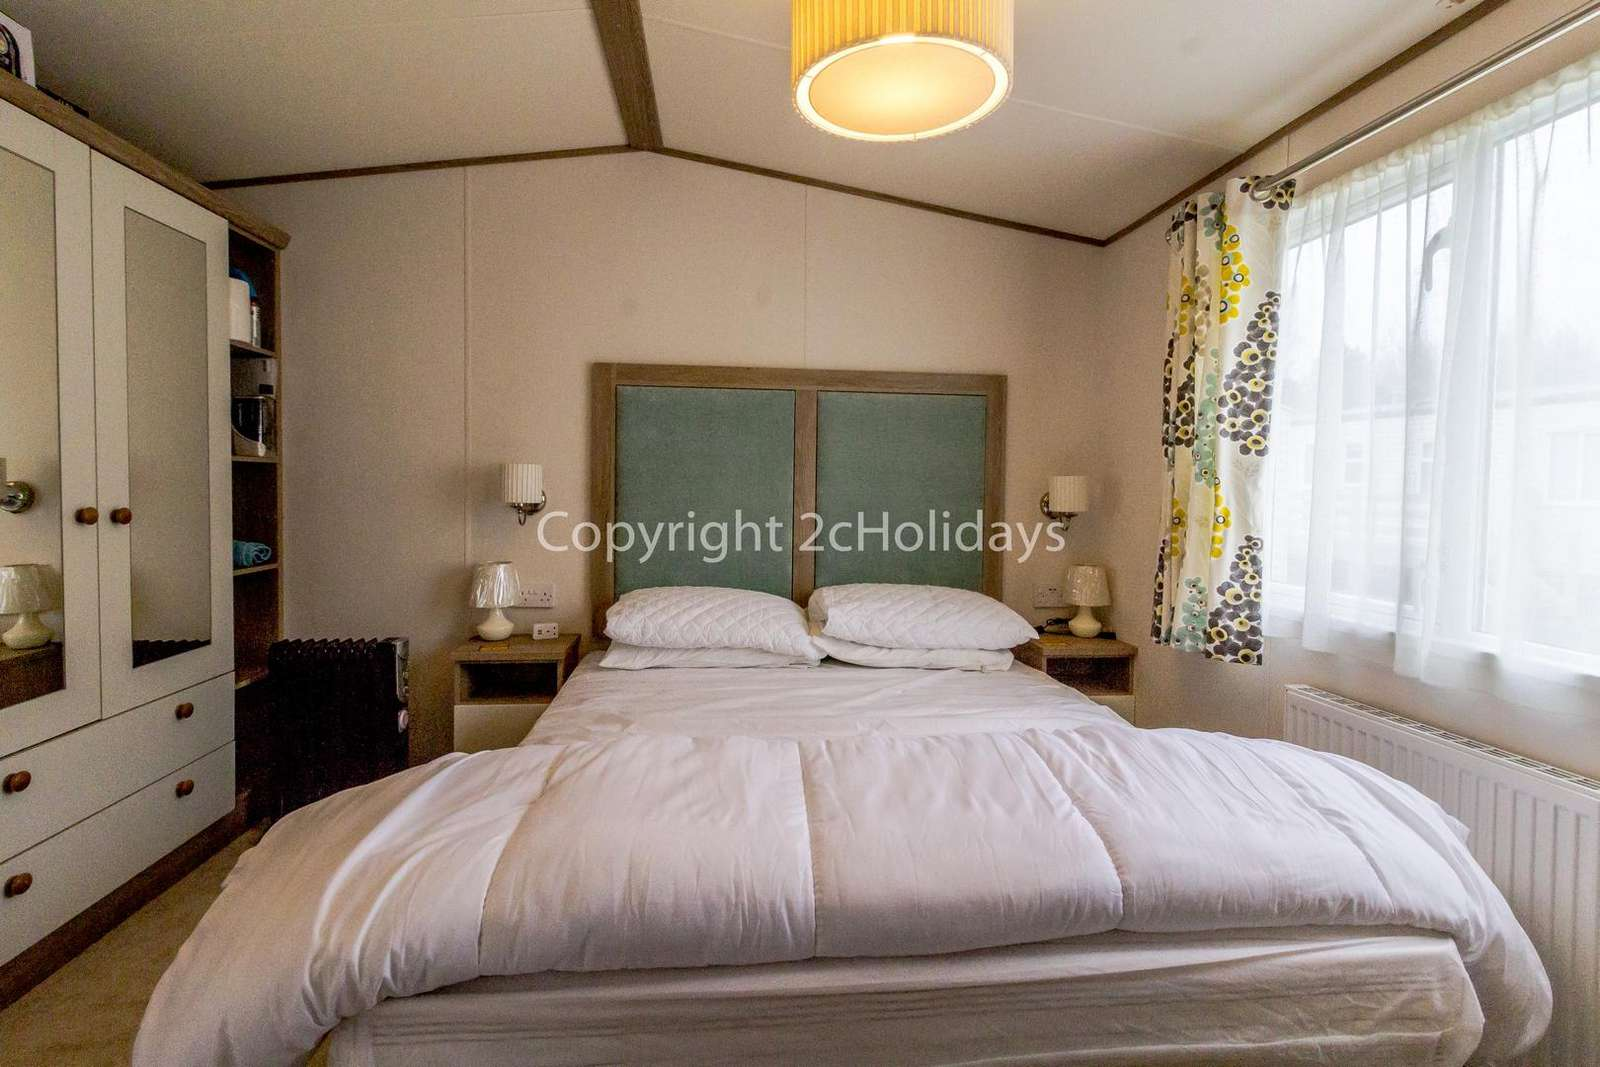 You can find plenty of storage space in this lovely master bedroom